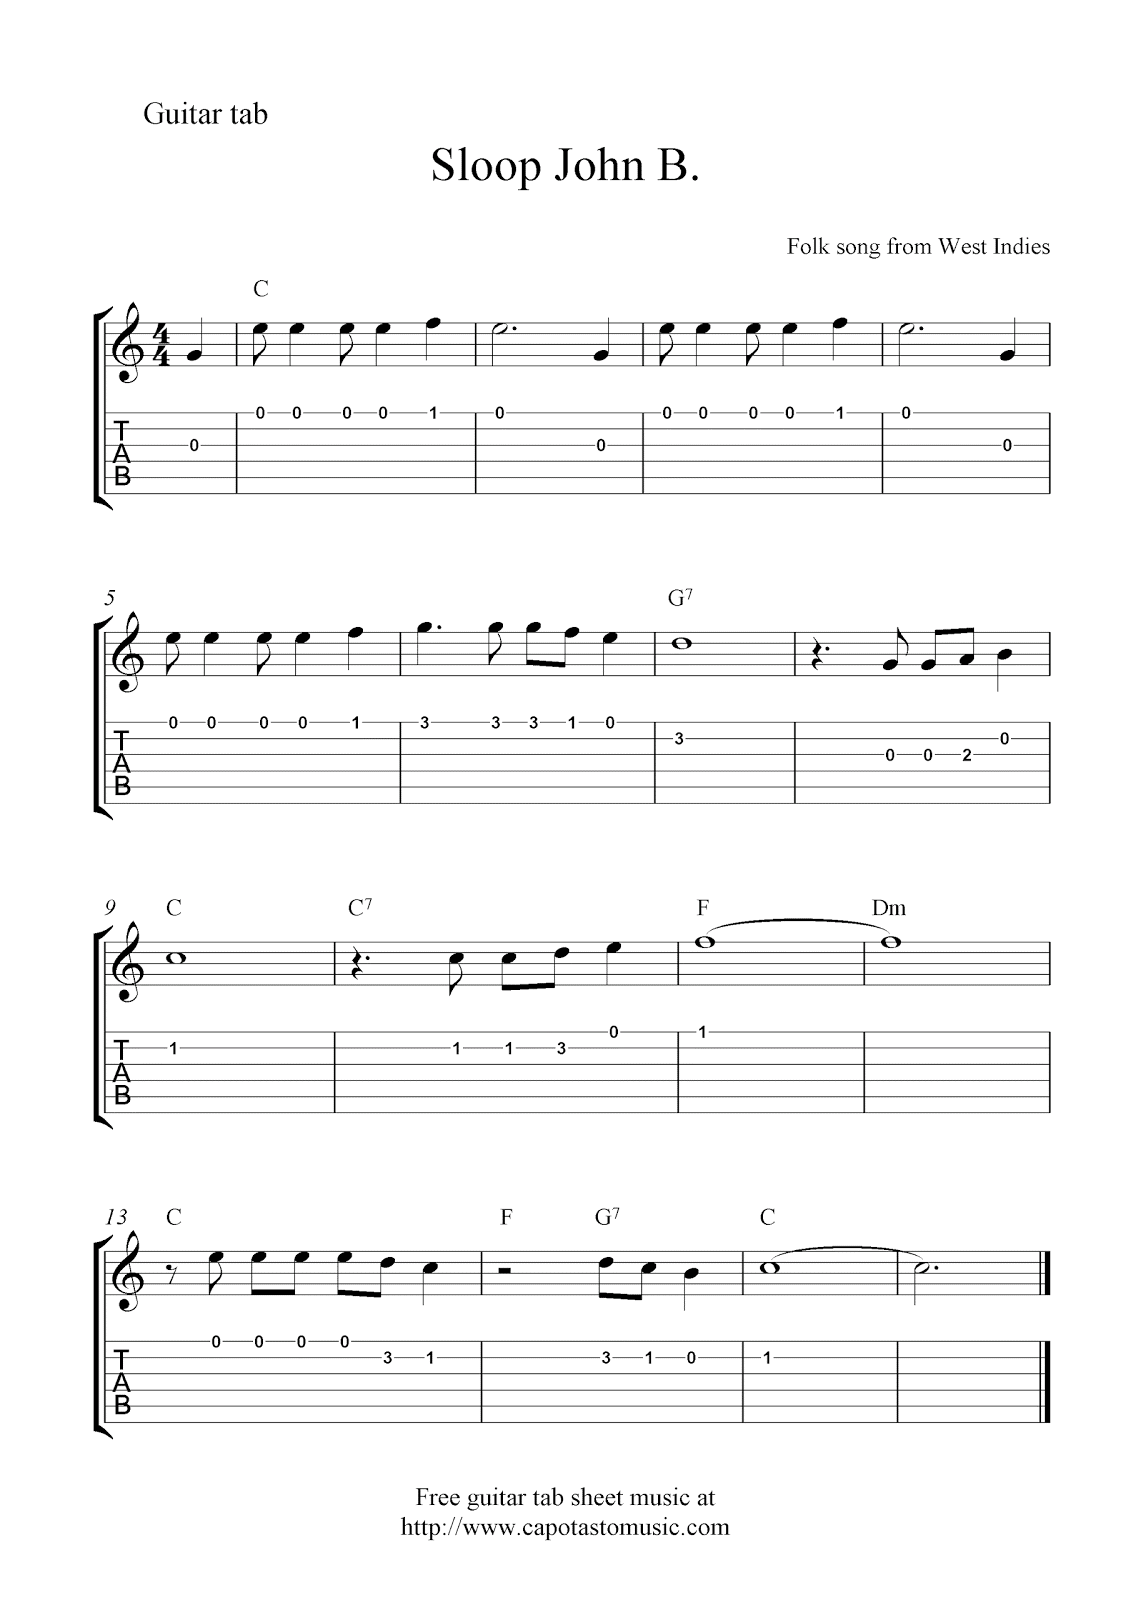 Free Guitar Tablature Sheet Music Notes Sloop John B